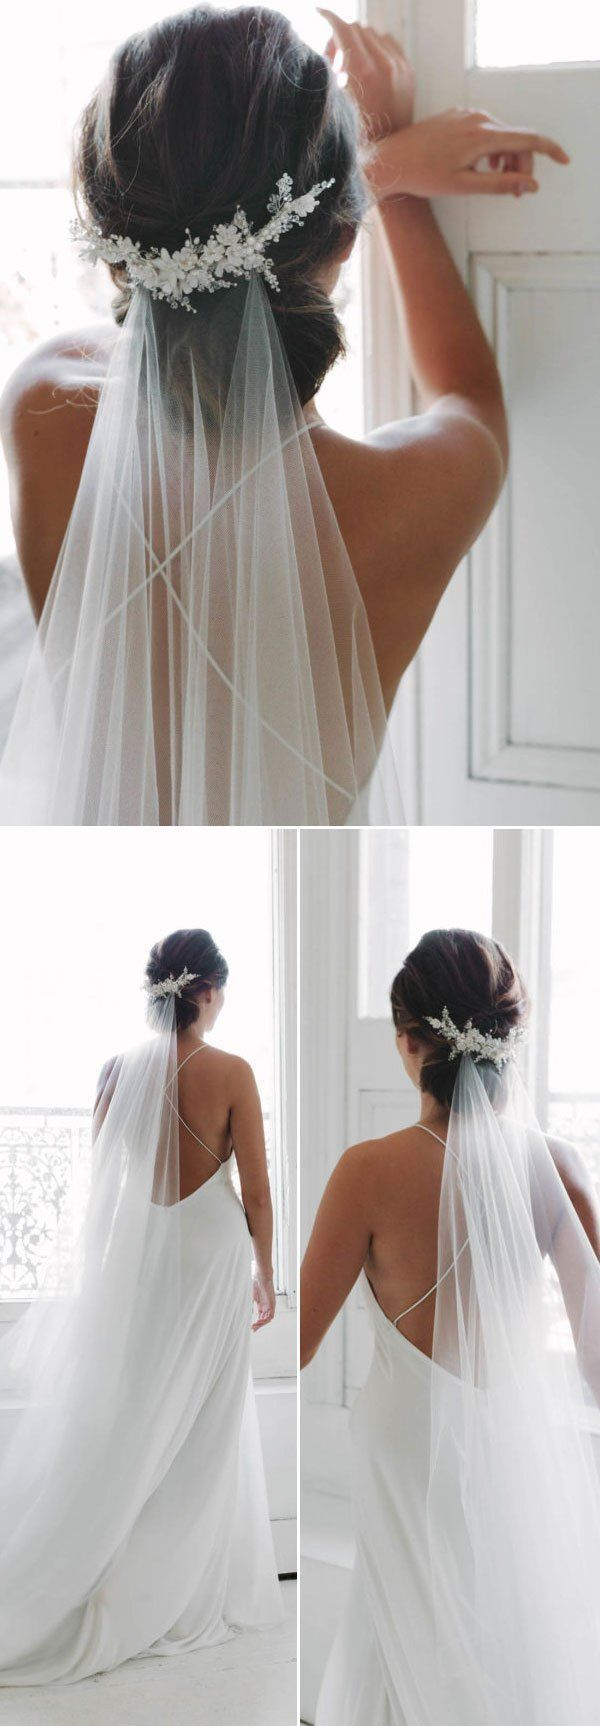 Top 20 Wedding Hairstyles with Veils and Accessories – Forevermorebling | Wedding Blog